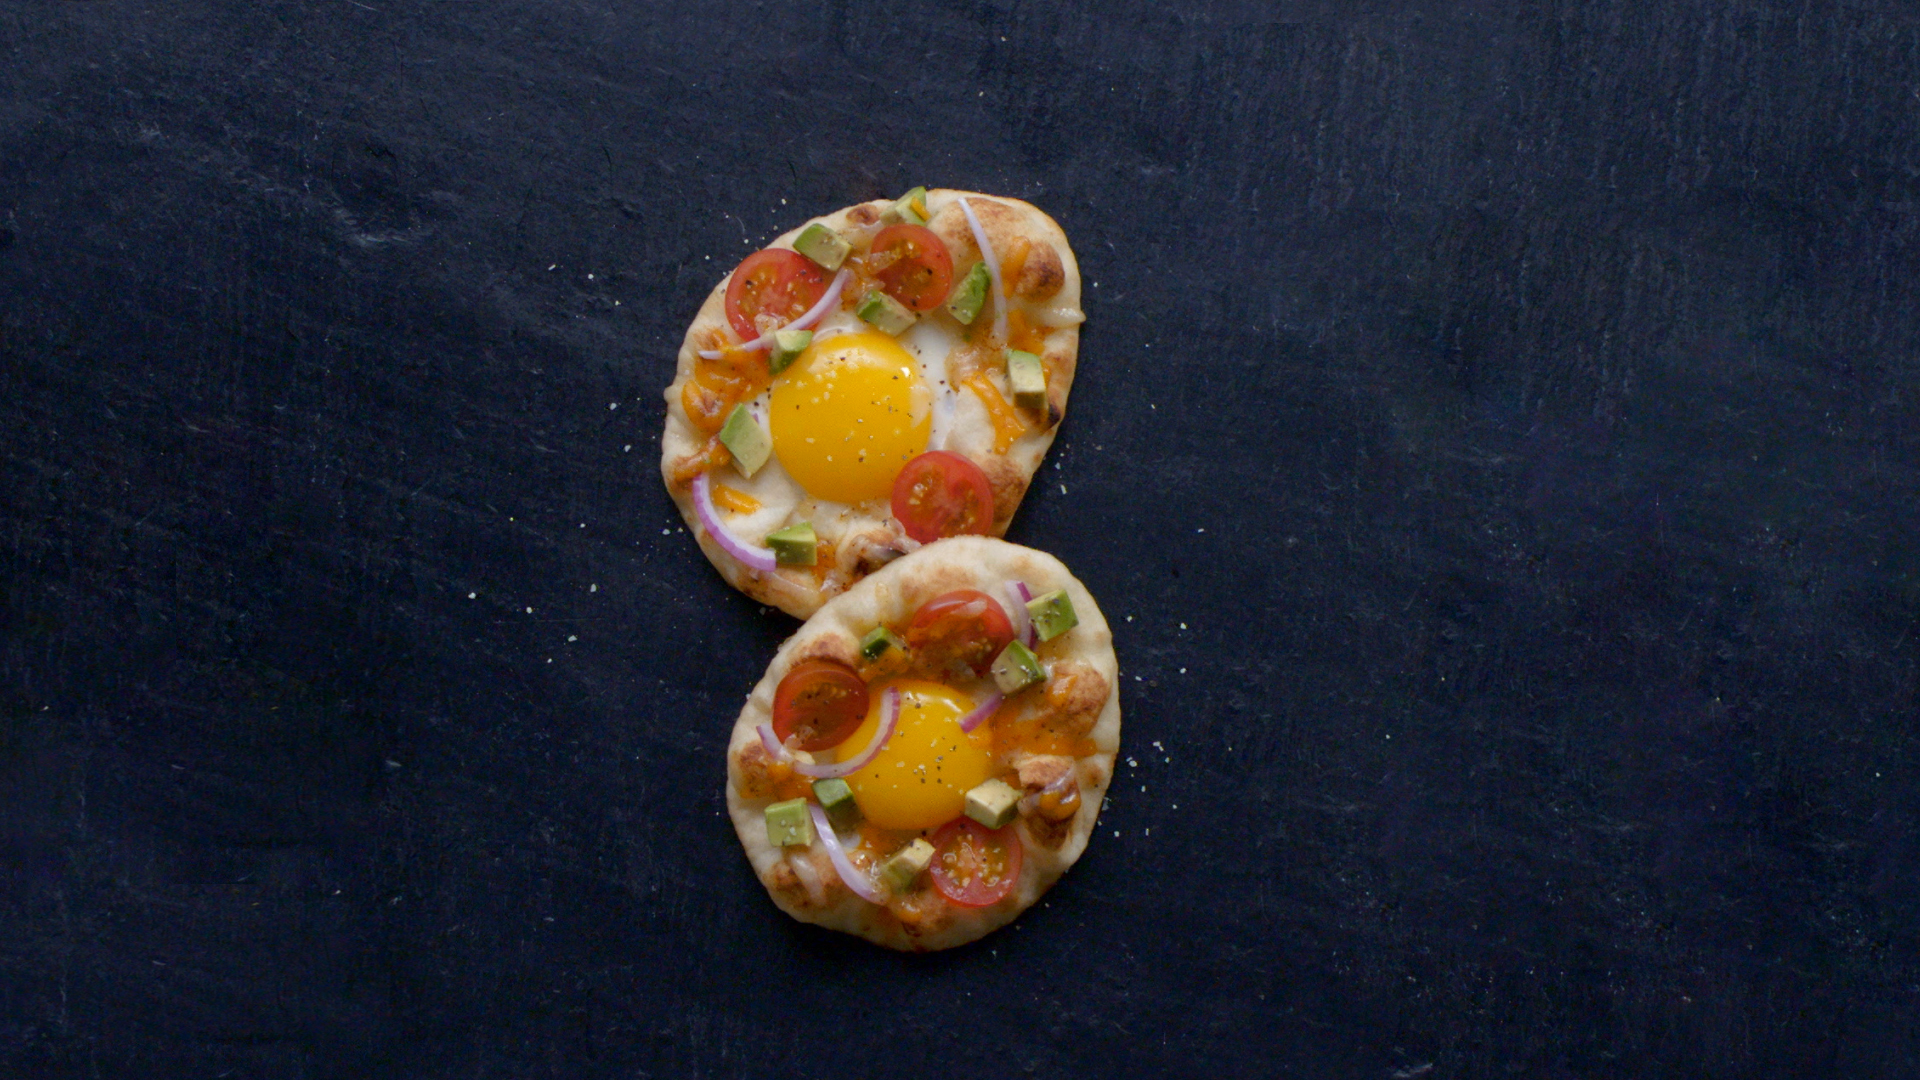 two Mini Naan 'Egg In The Hole' topped with tomatoes, avocado, onion and cheese.